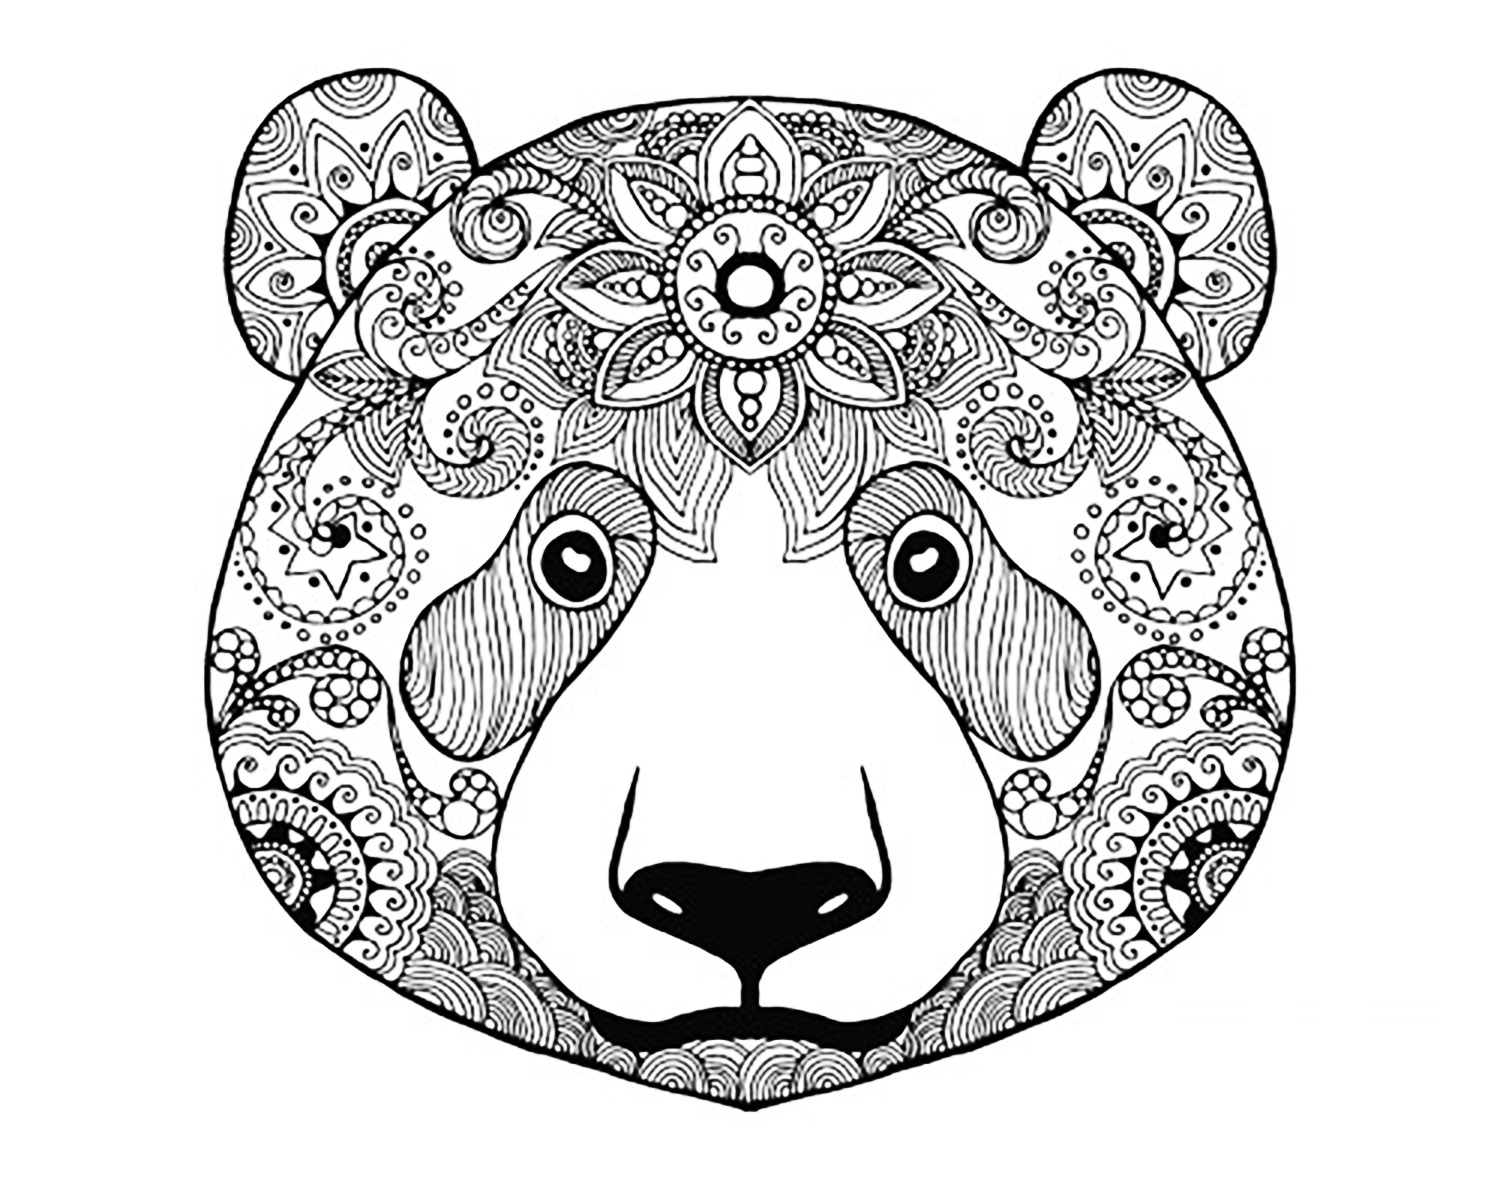 detailed animal coloring pages animal coloring pages for adults best coloring pages for animal detailed coloring pages